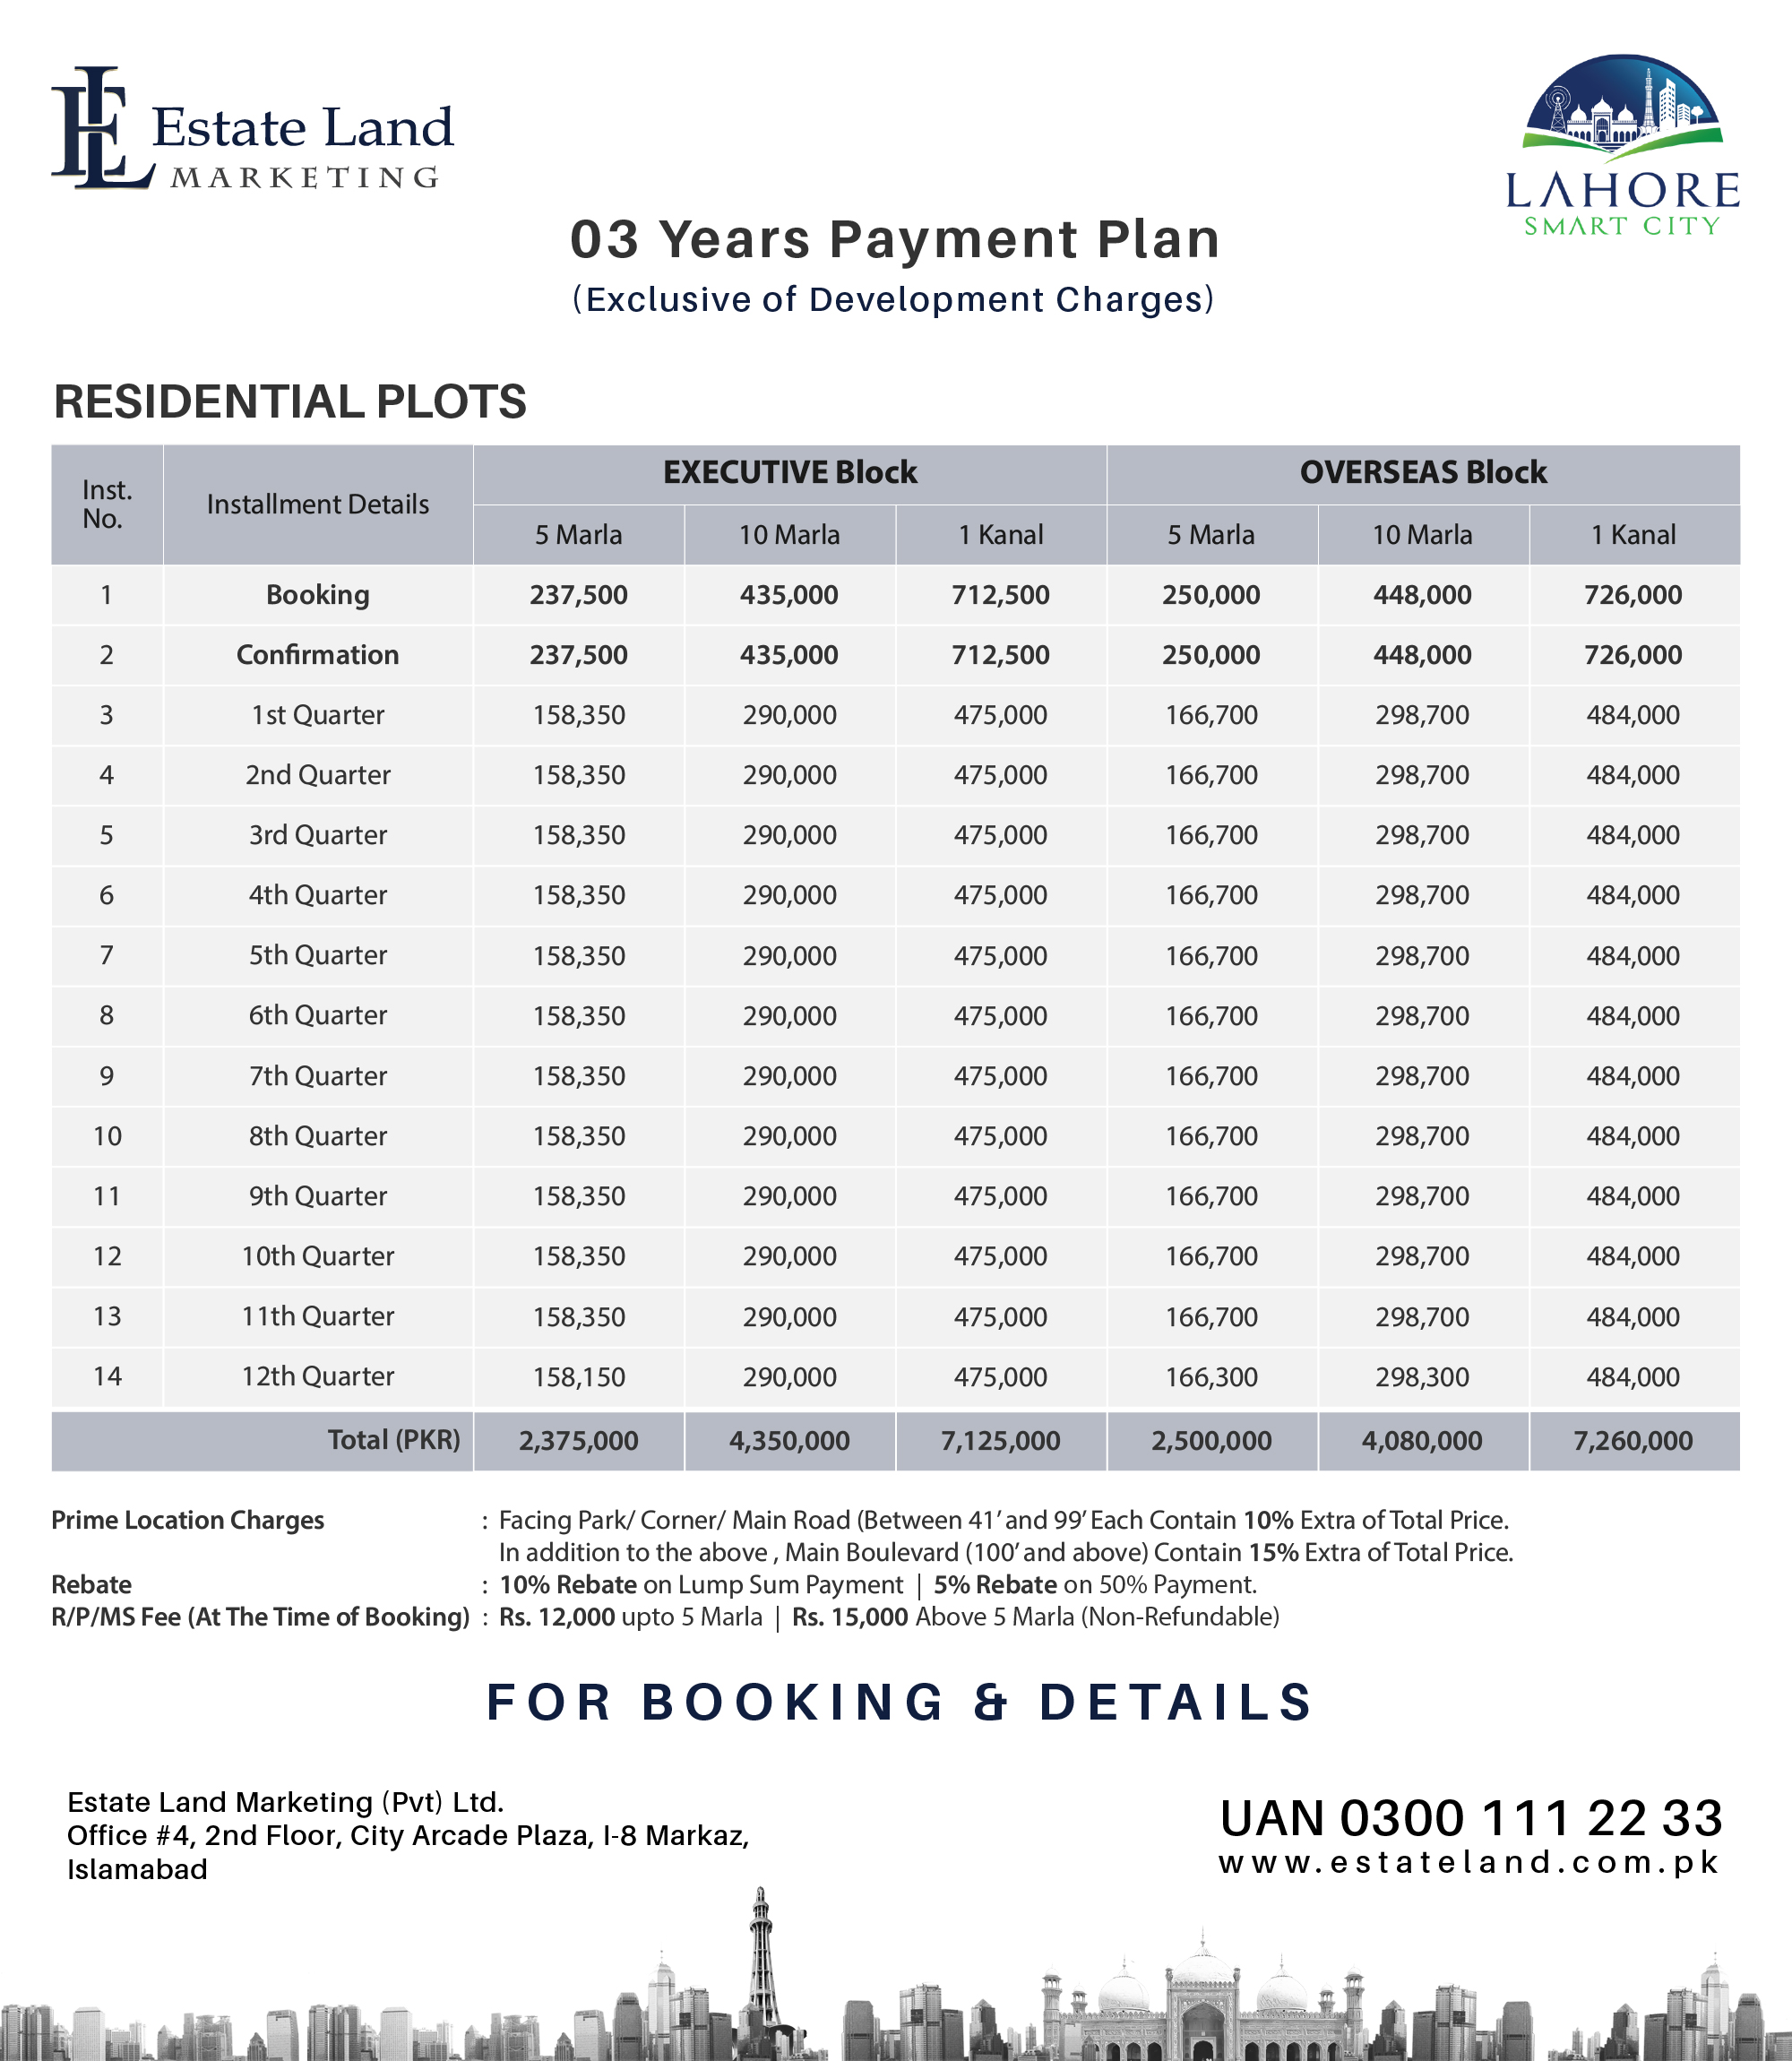 5 marla and 10 marla residential plot payment plan of Lahore smart city